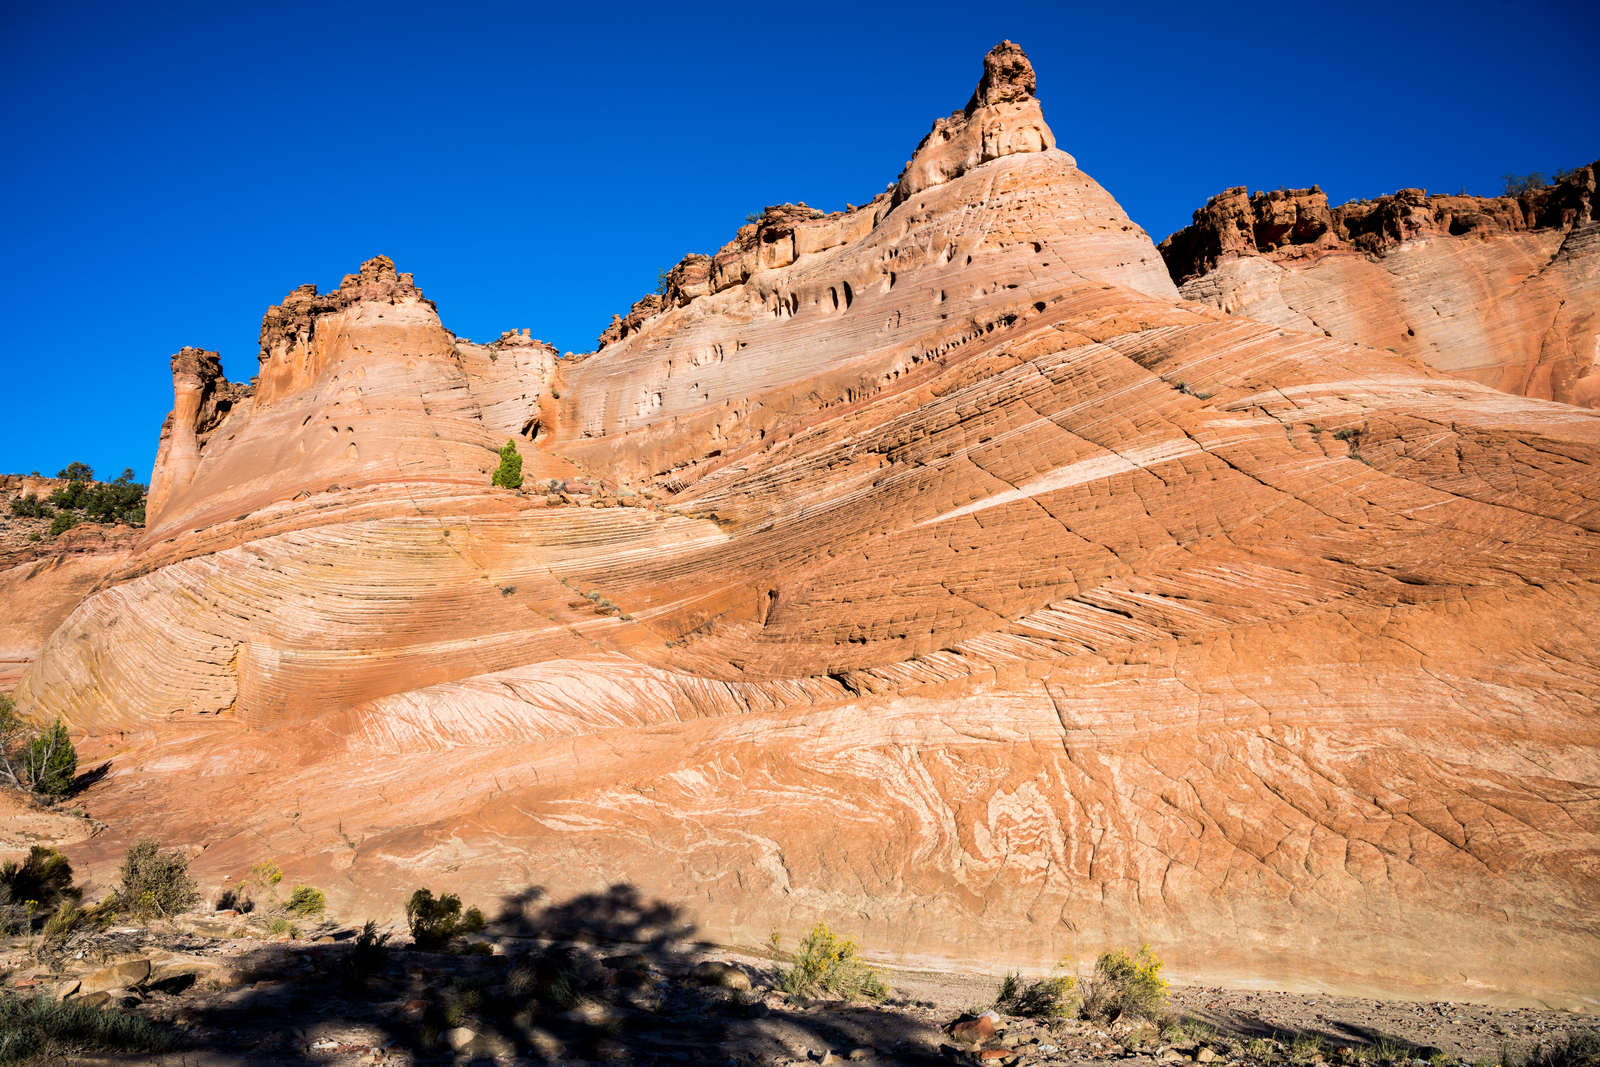 Grand Staircase-Escalante, edited. 1/160 at f/8.0, ISO 64